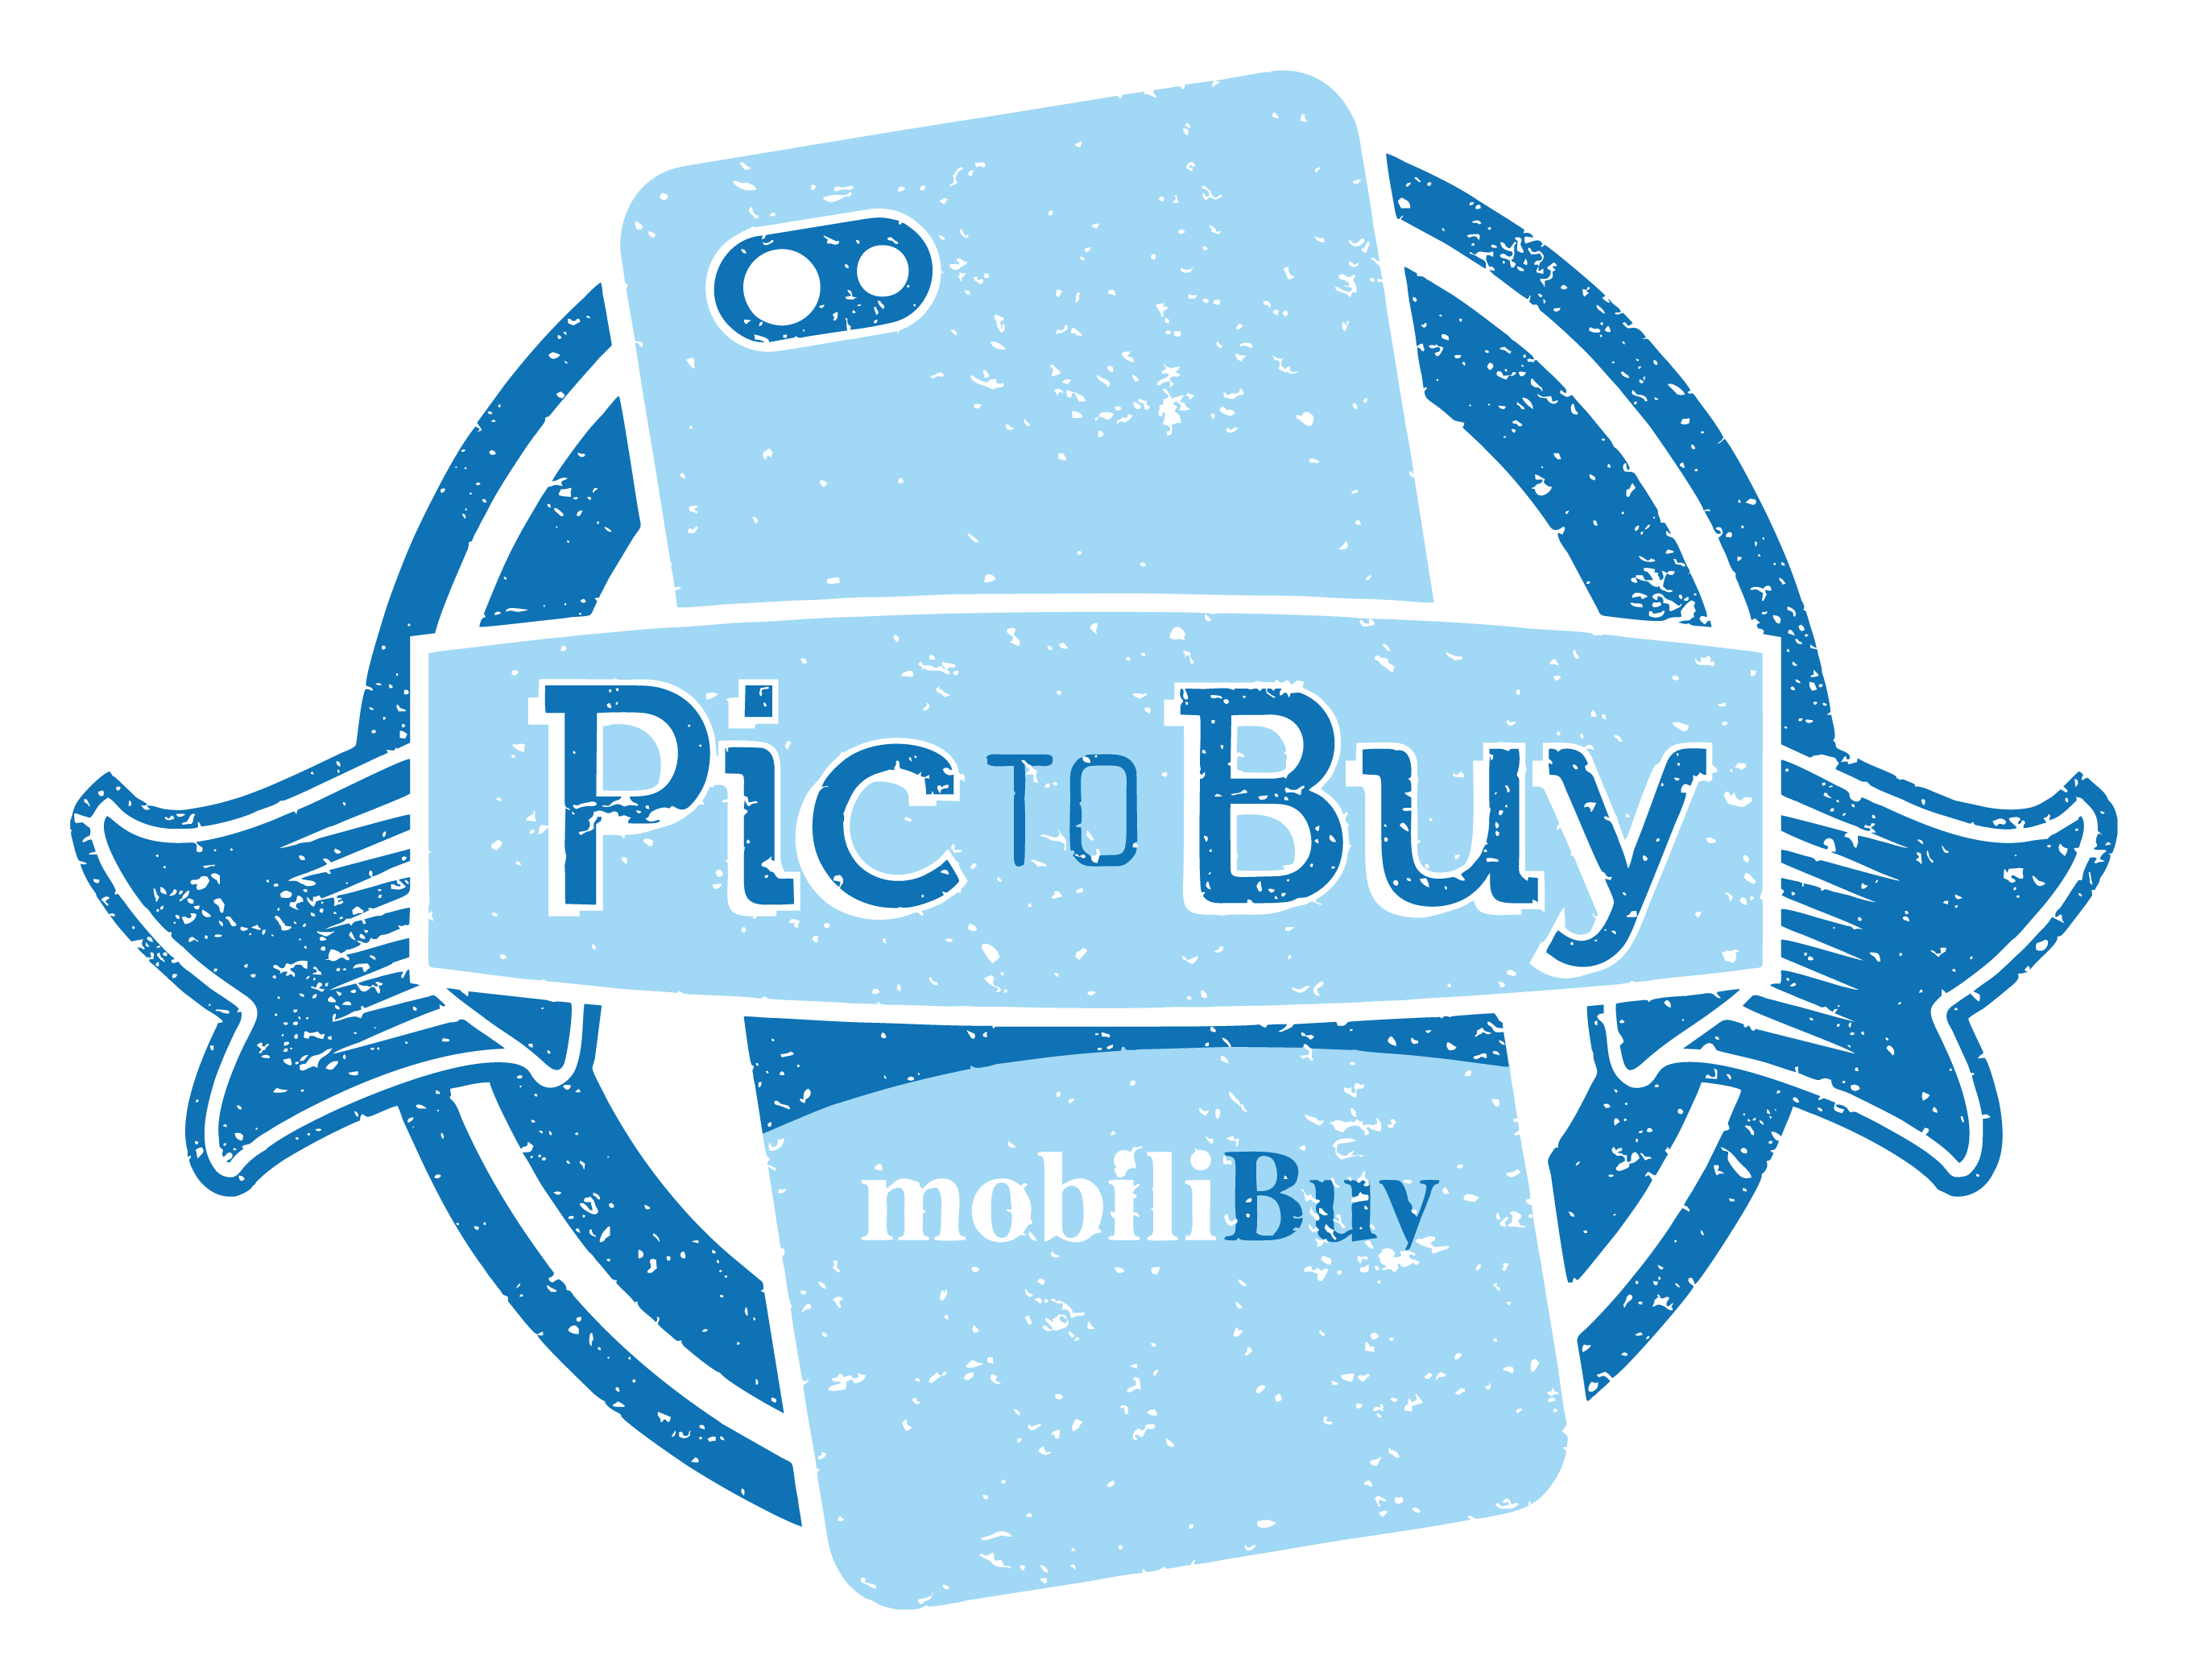 MobiliBuy Pic to Buy